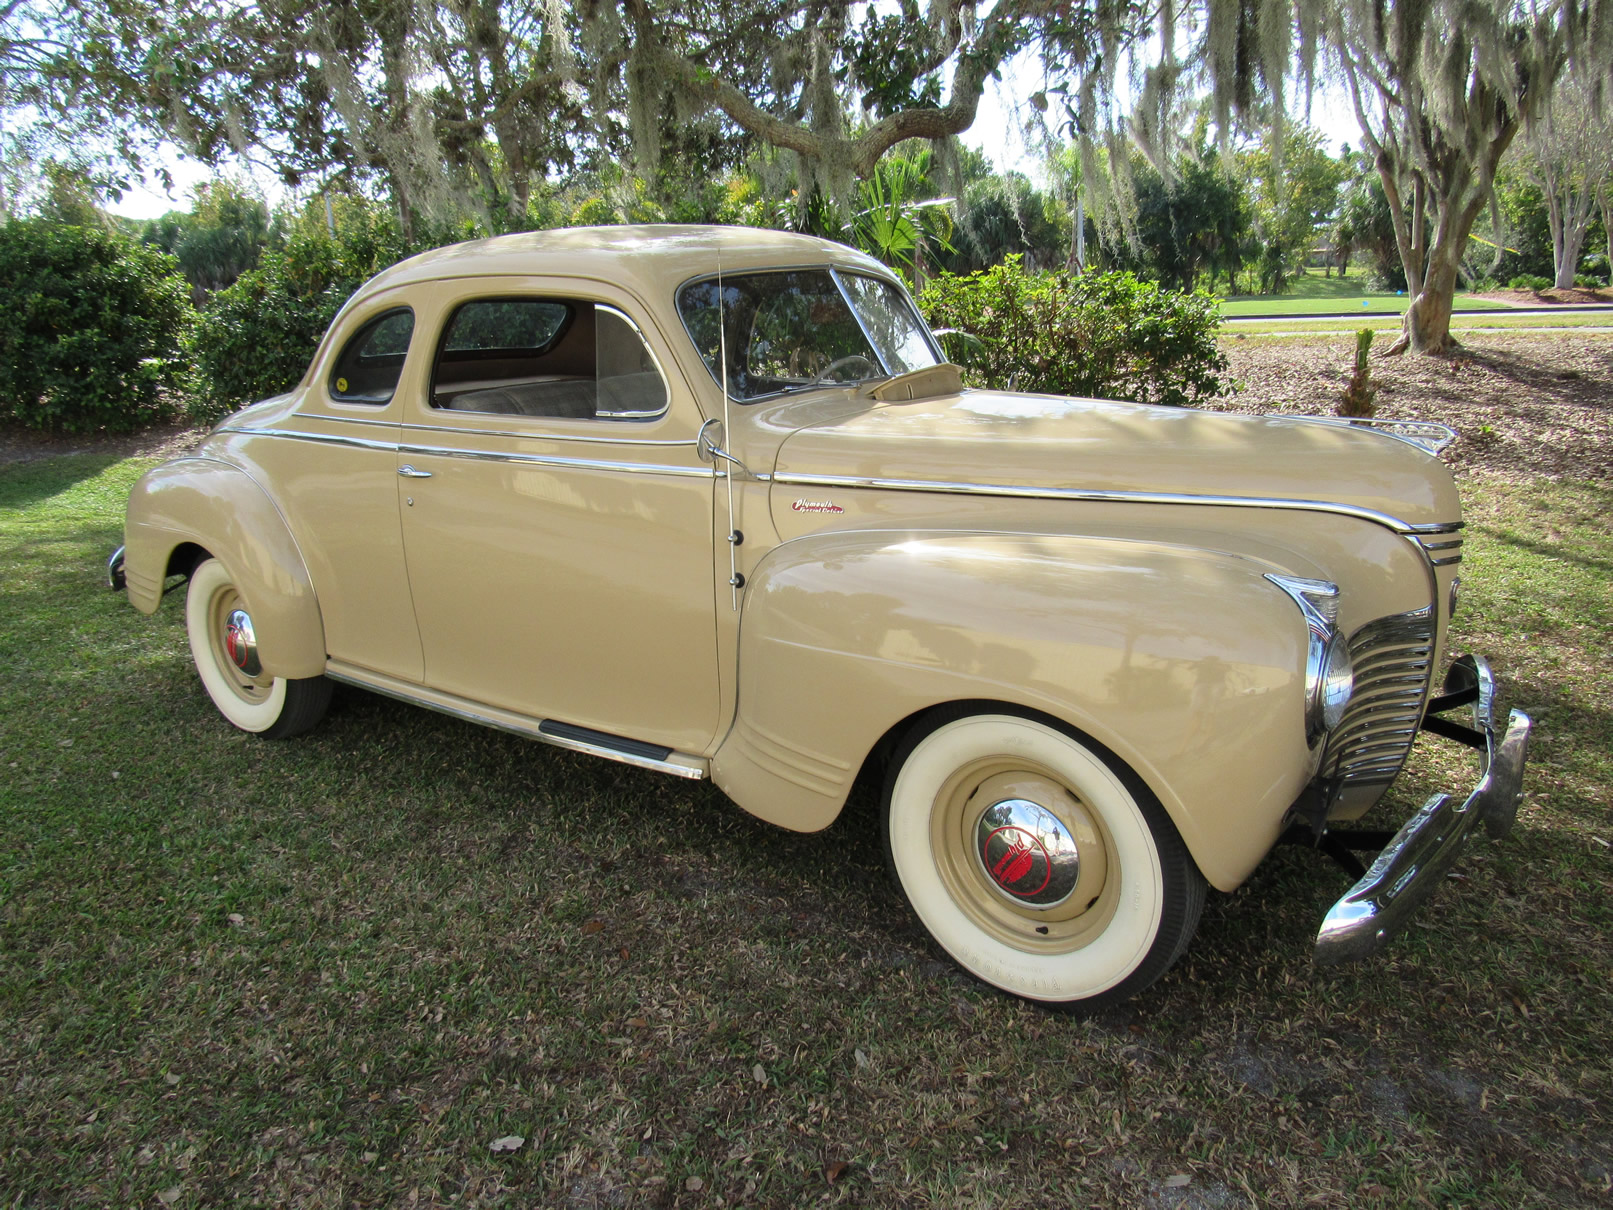 Vehicle - Vehicle - Automobile - Plymouth - Deluxe